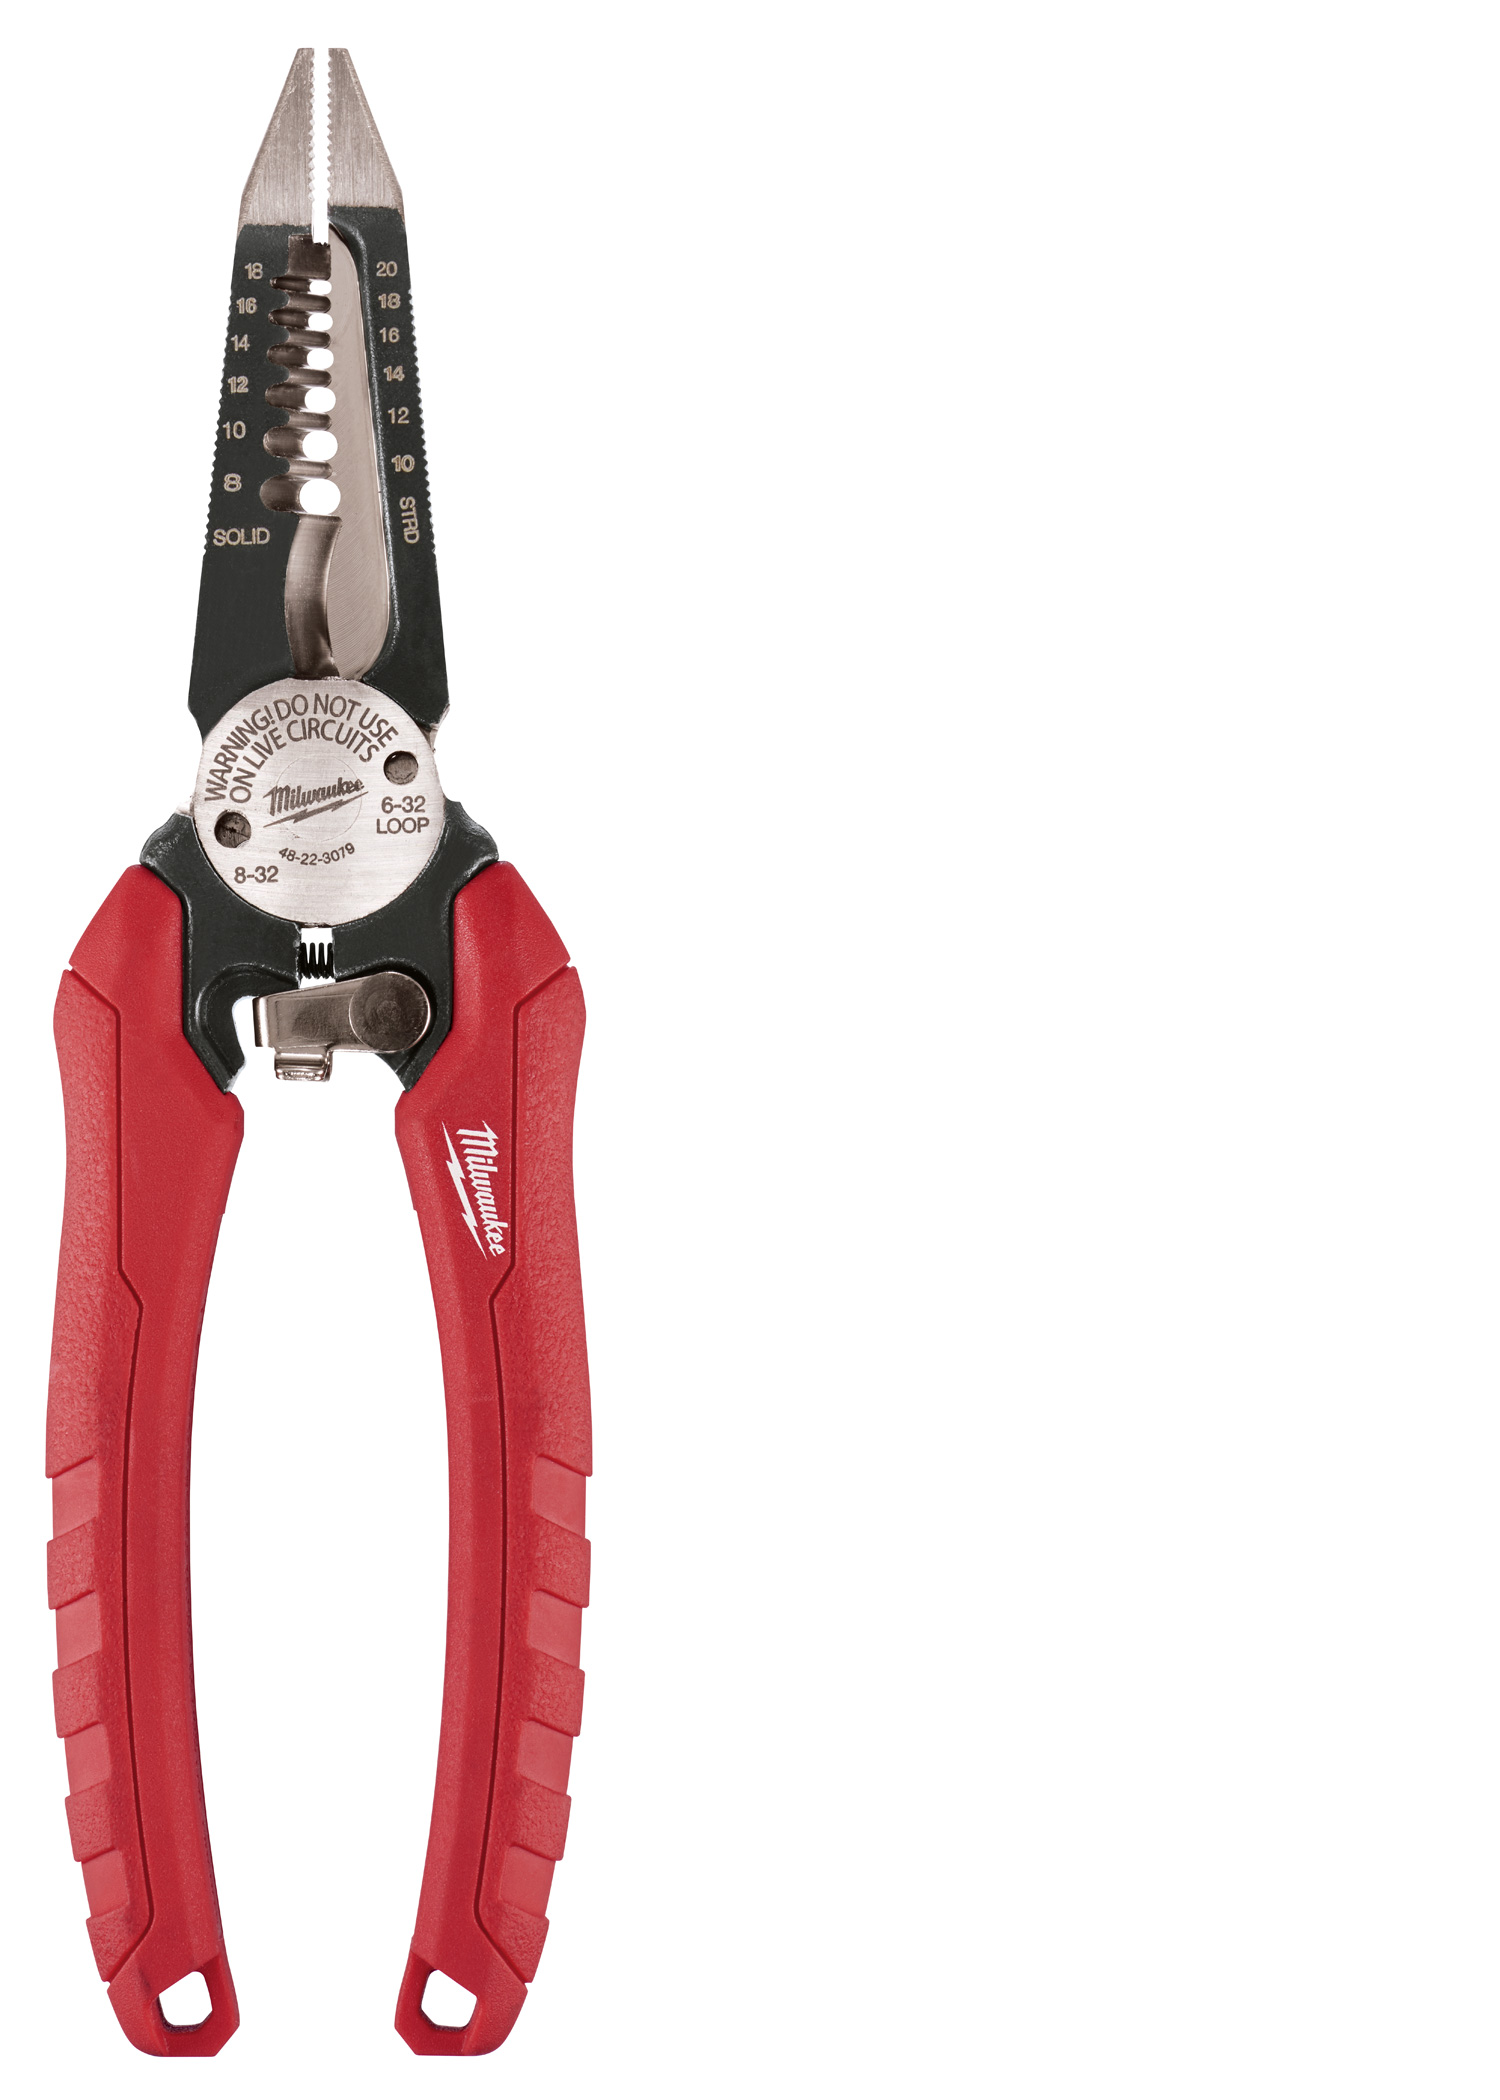 Milwaukee® 48-22-3079 6-in-1 Single Handed Spring Loaded Combination Plier With Side Cutter and Wire Stripper, 2-1/4 in L x 1-1/2 in W Forged Alloy Steel Jaw, 7-1/2 in OAL